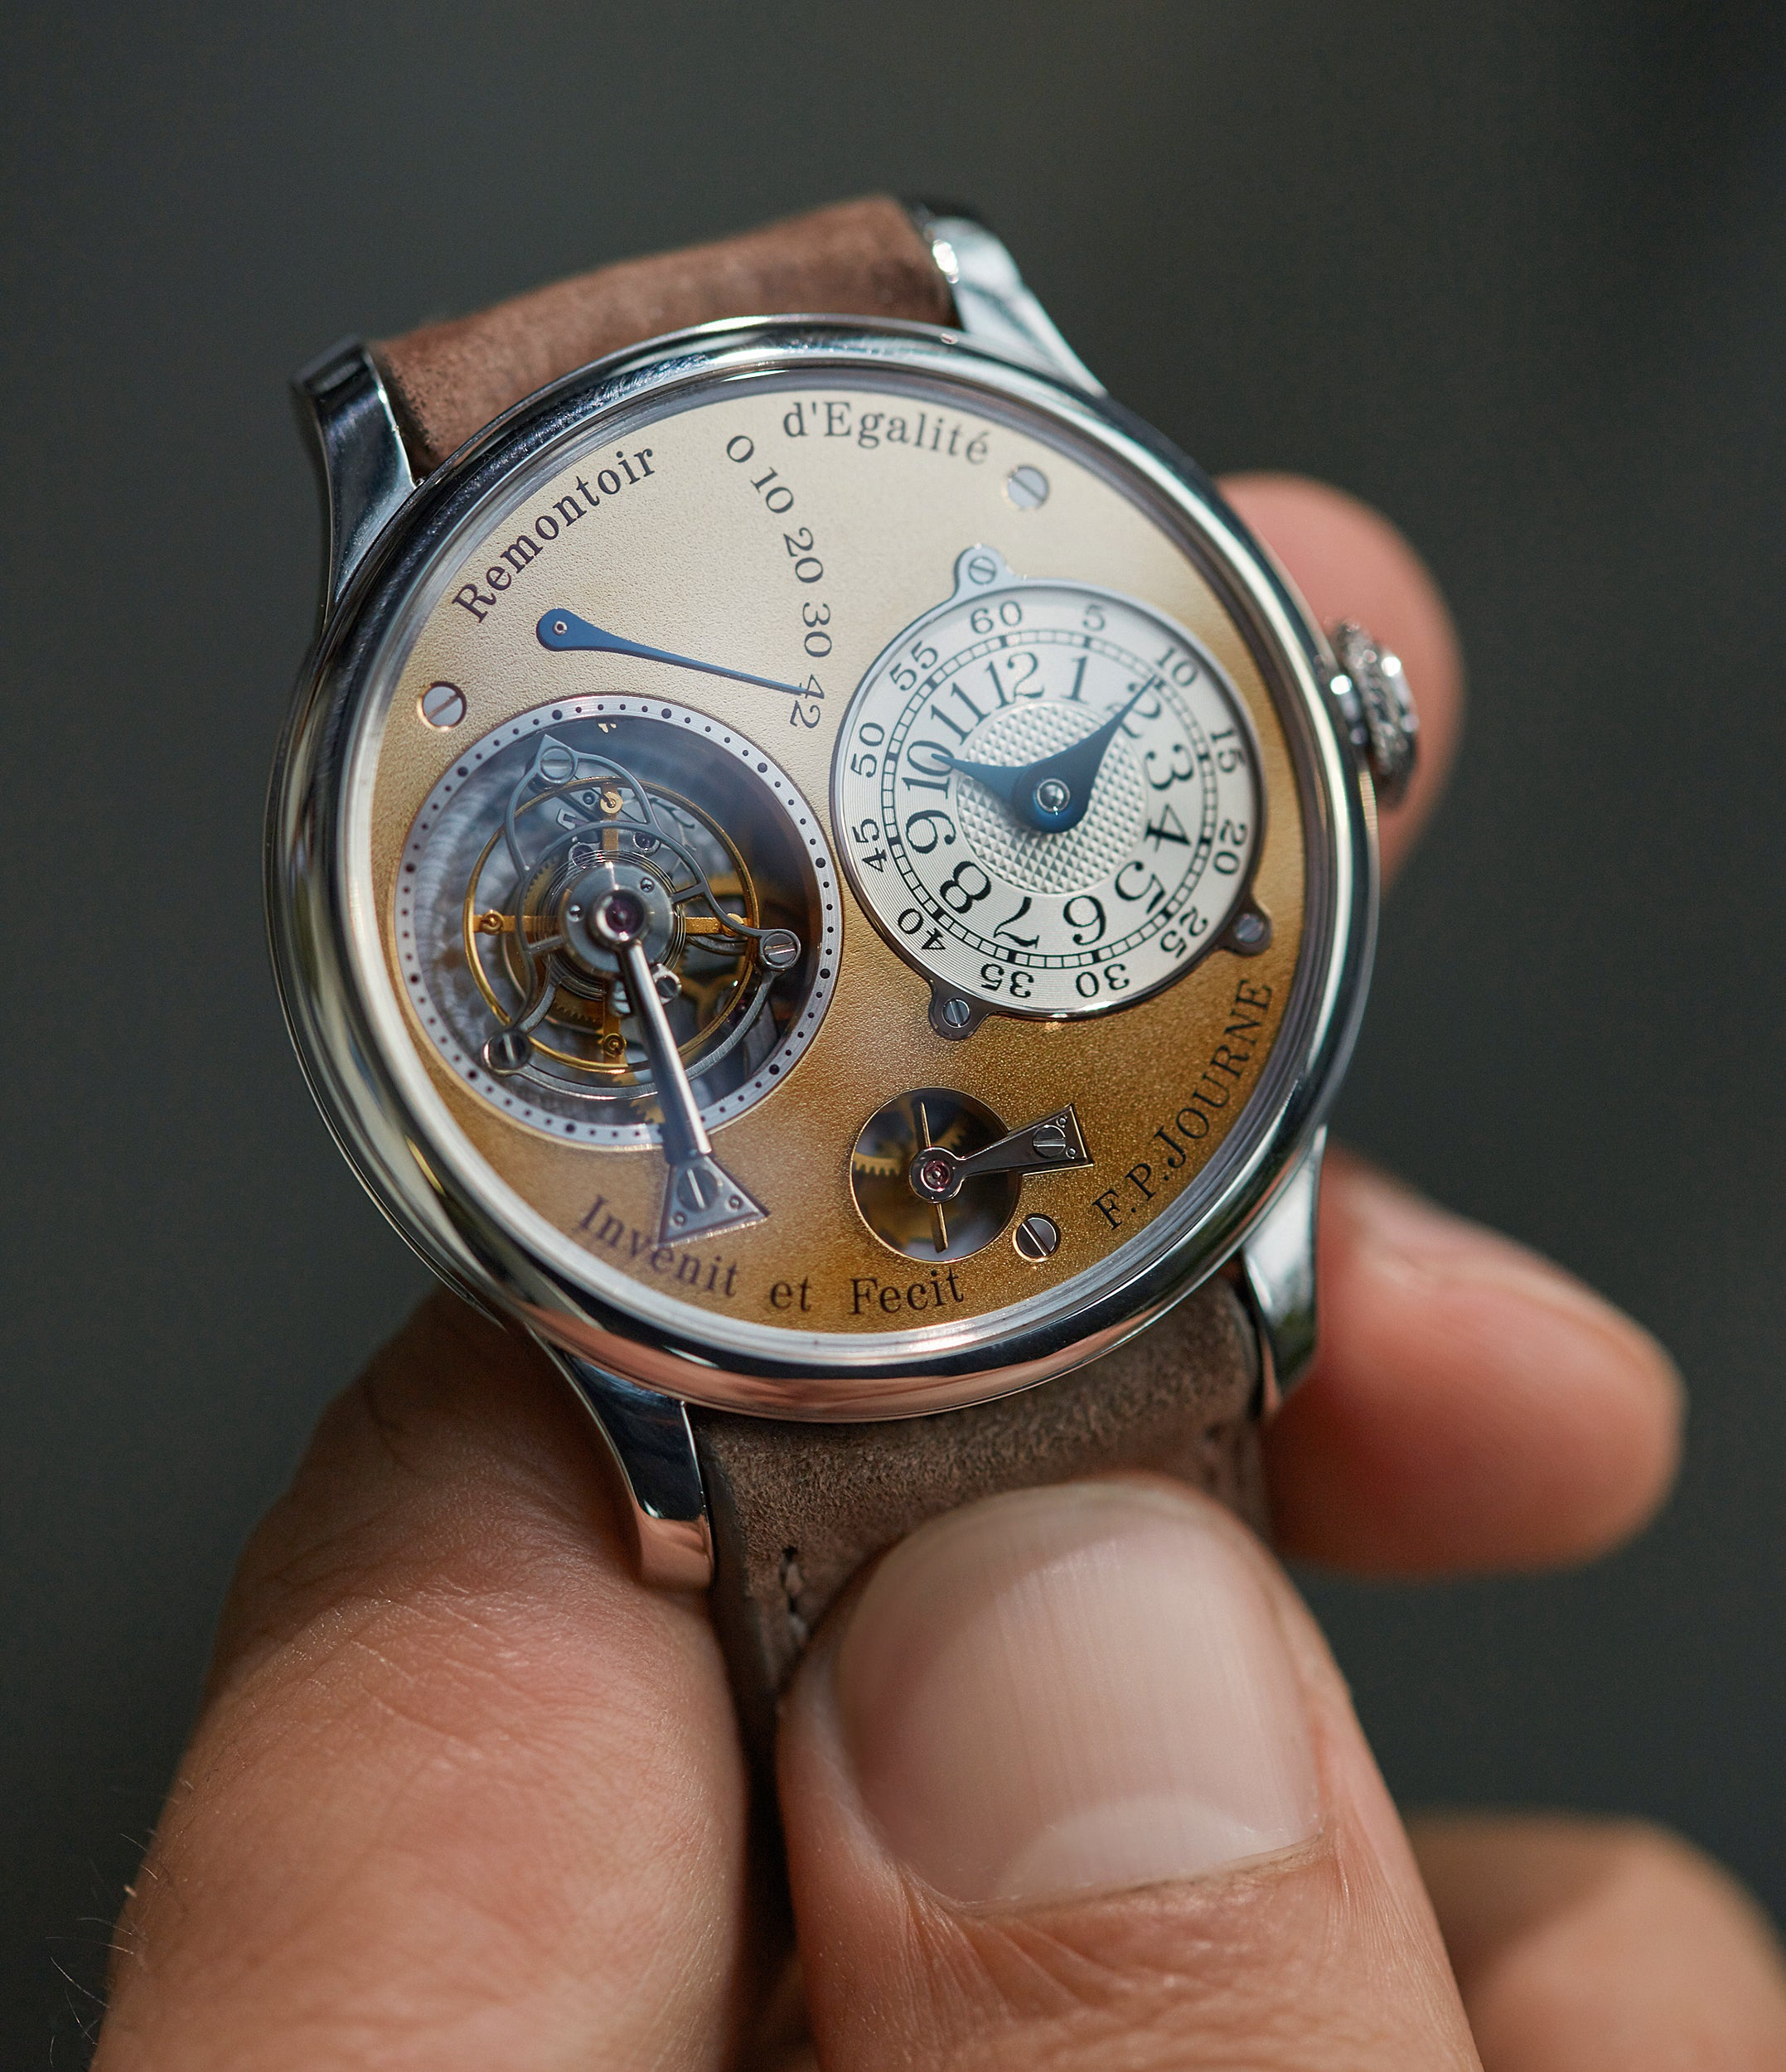 independent watchmaker F. P. Journe early Tourbillon Souverain 38mm platinum brass movement collectable independent watchmaker for sale online at A Collected Man London specialist of rare watches